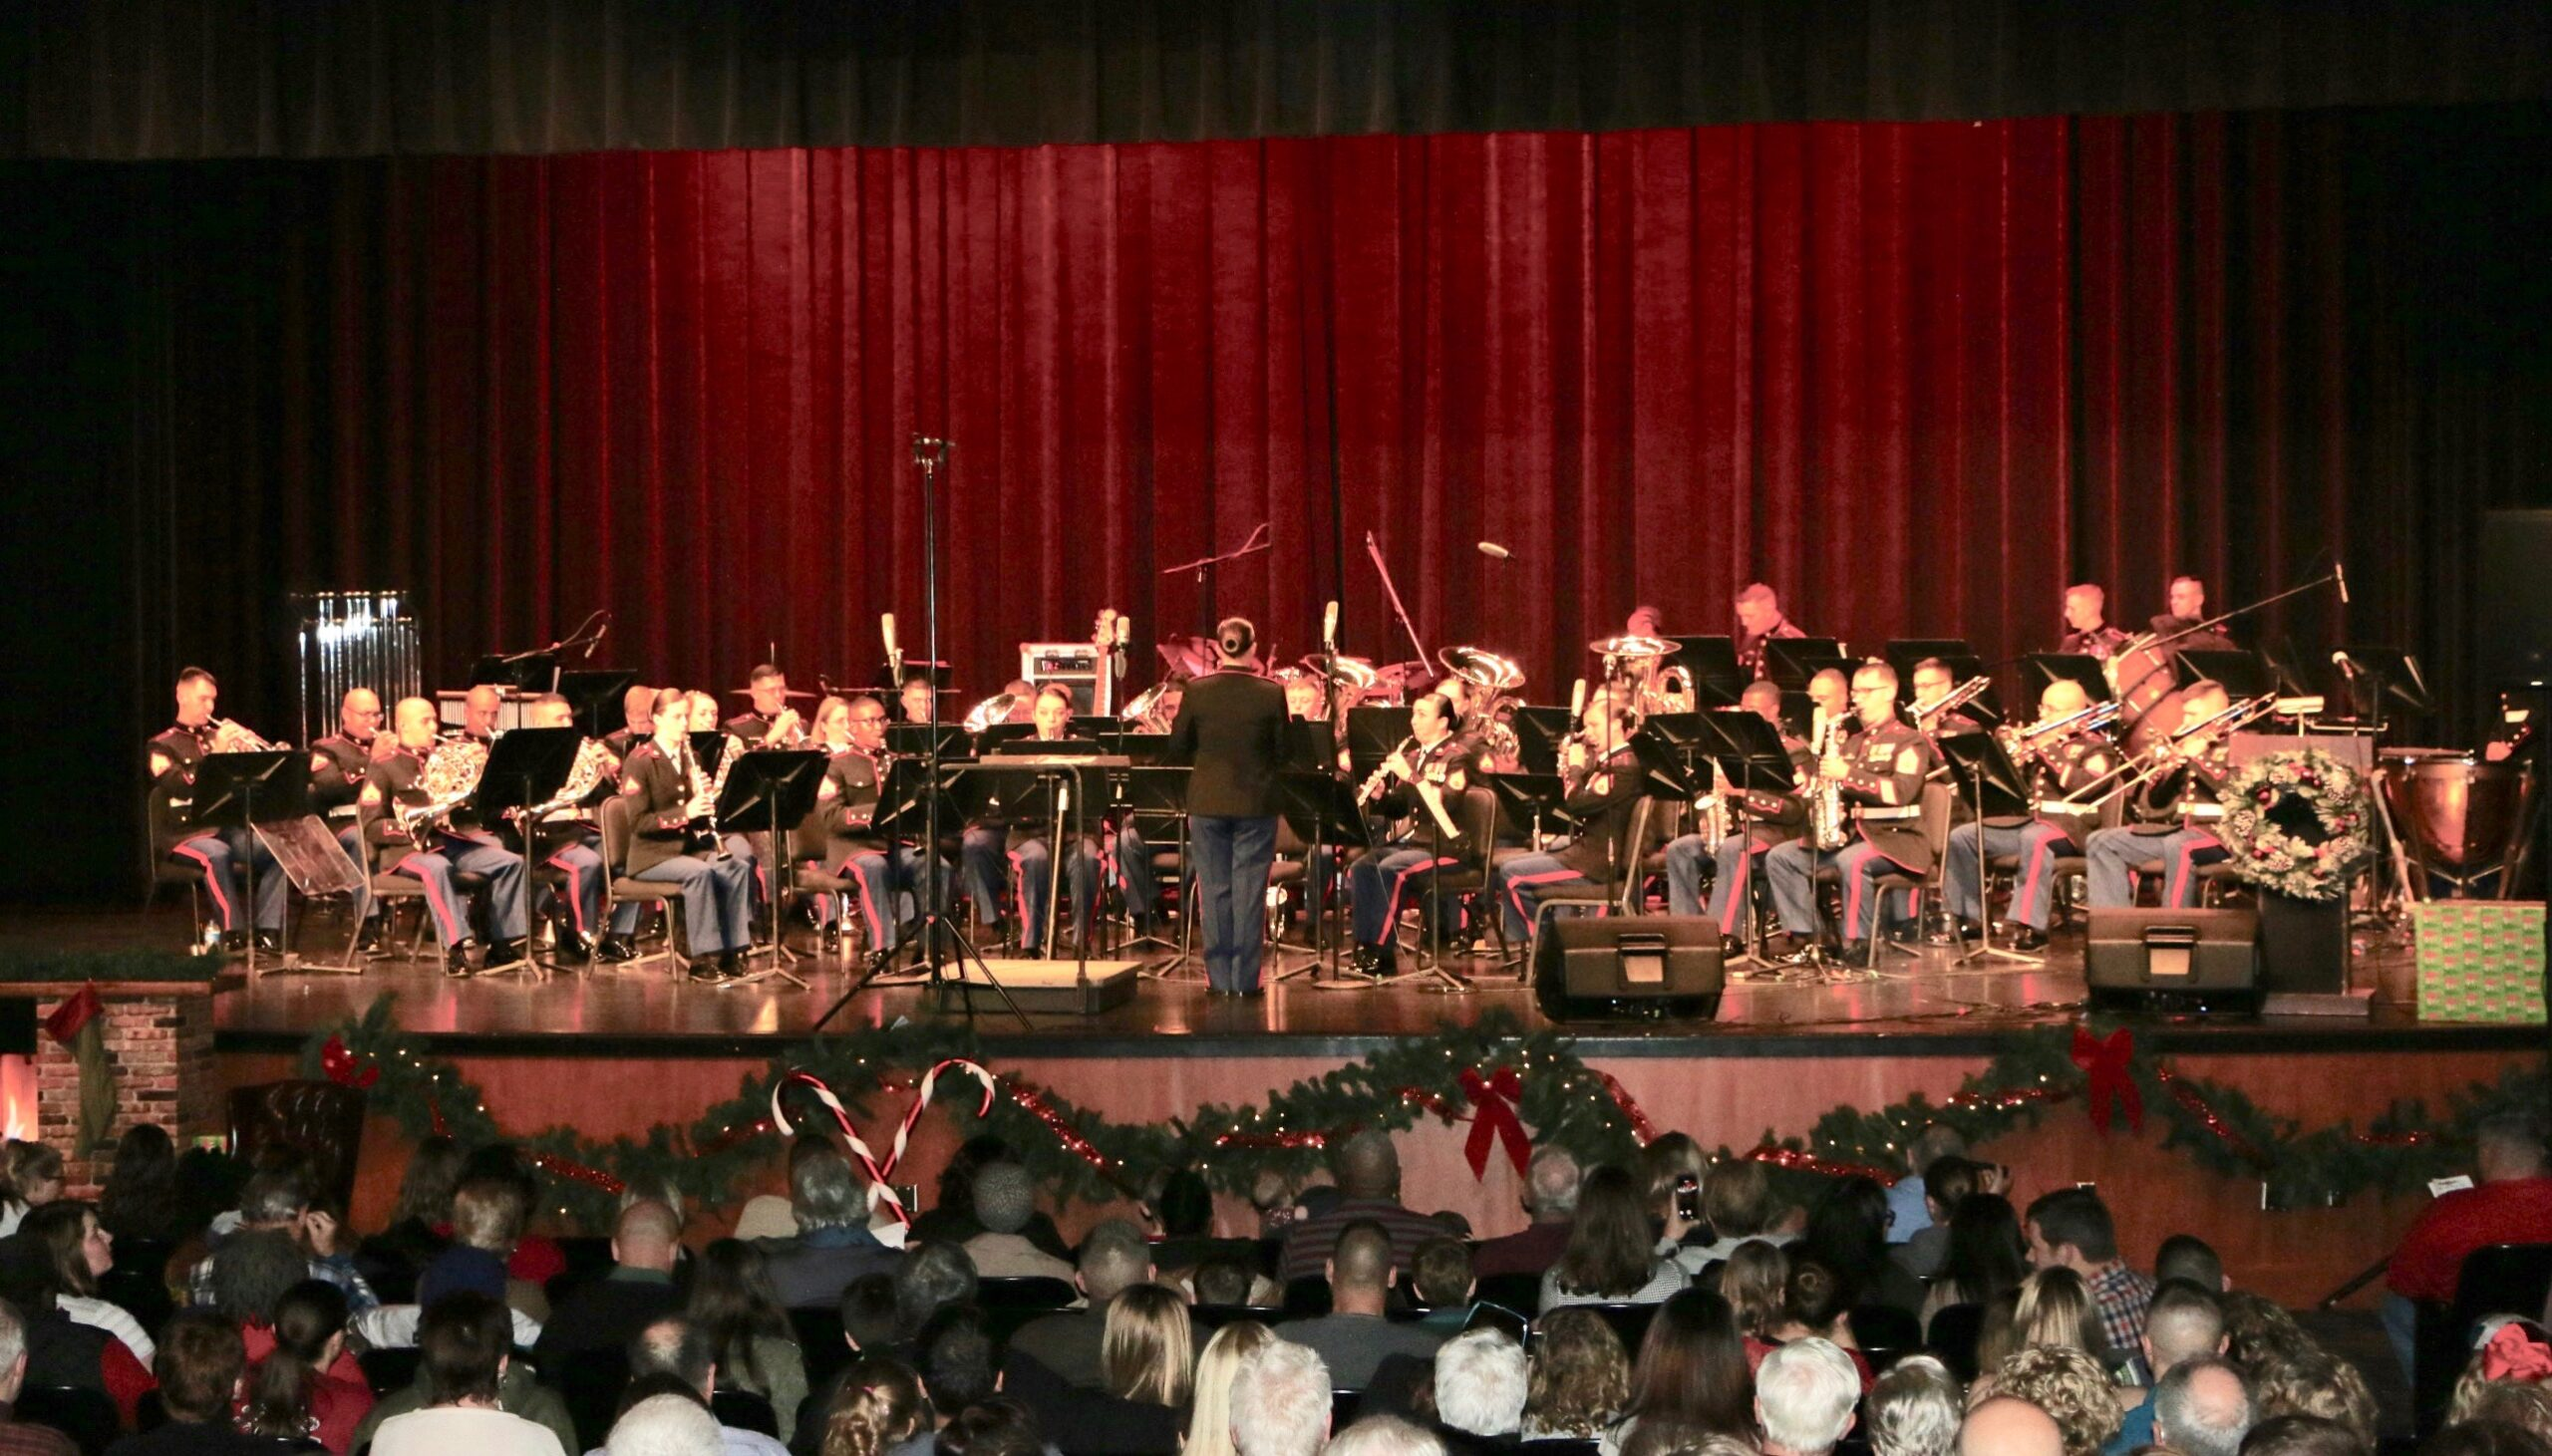 Parris Island Marine Band spreads Holiday JOY at Christmas concert